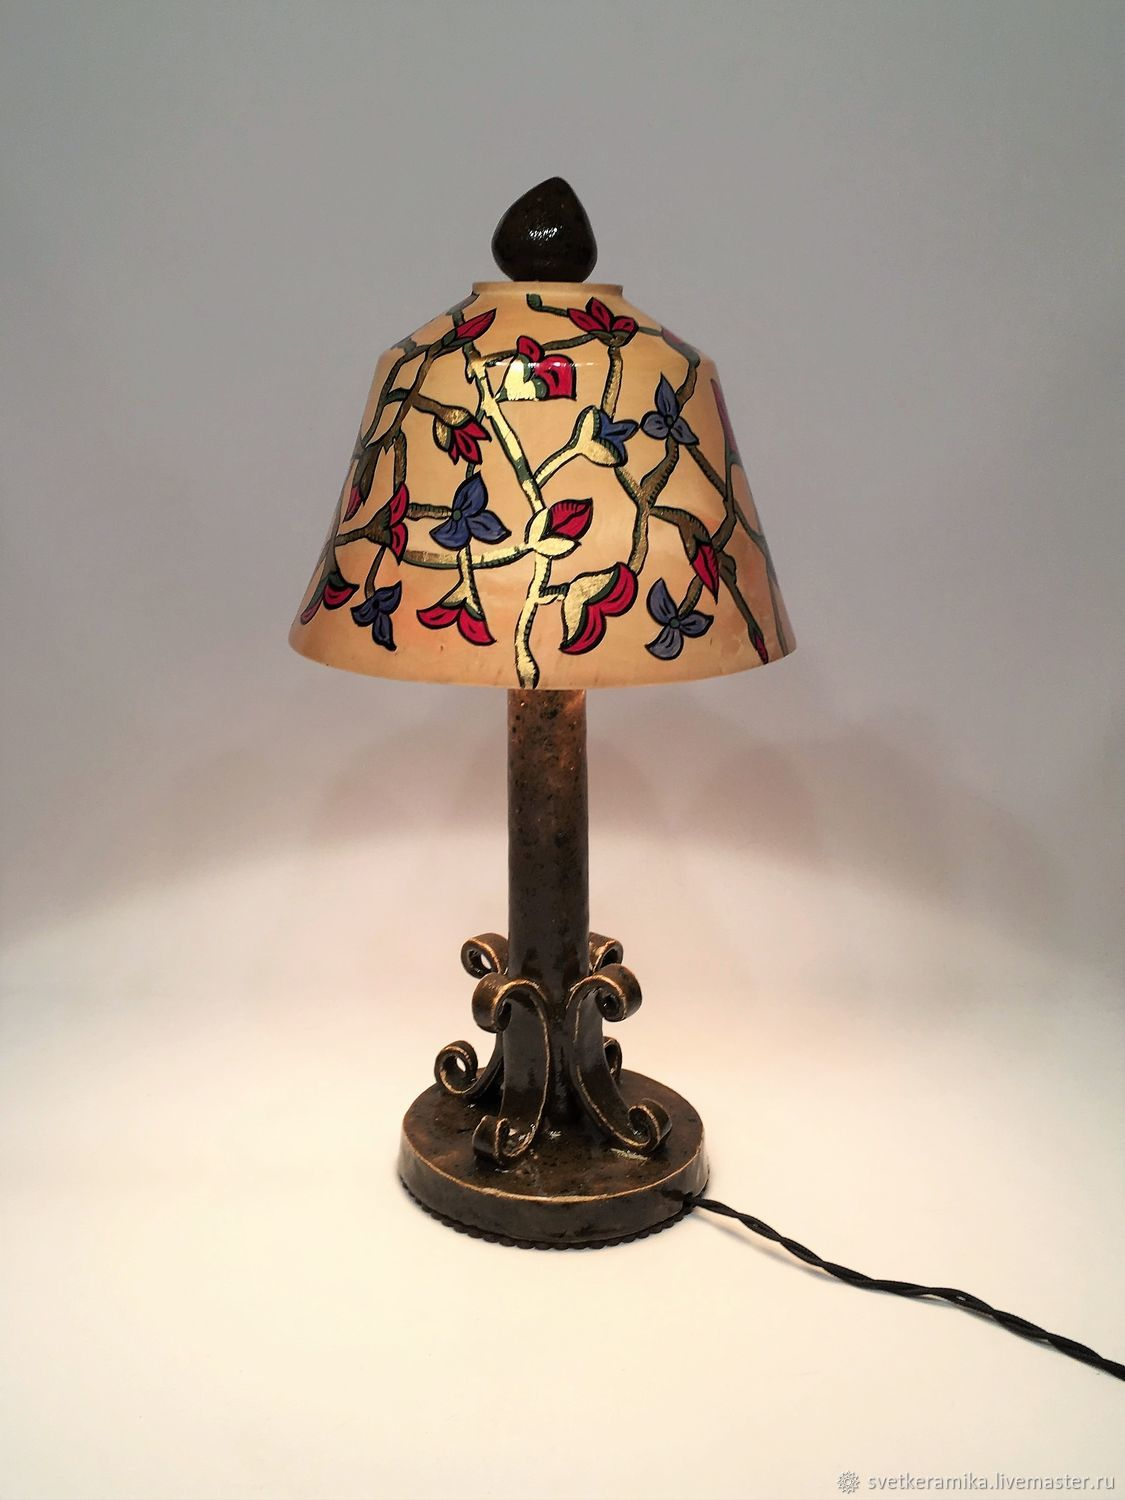 Table lamp made of wood, ceramics and copper painted, Table lamps, Moscow,  Фото №1